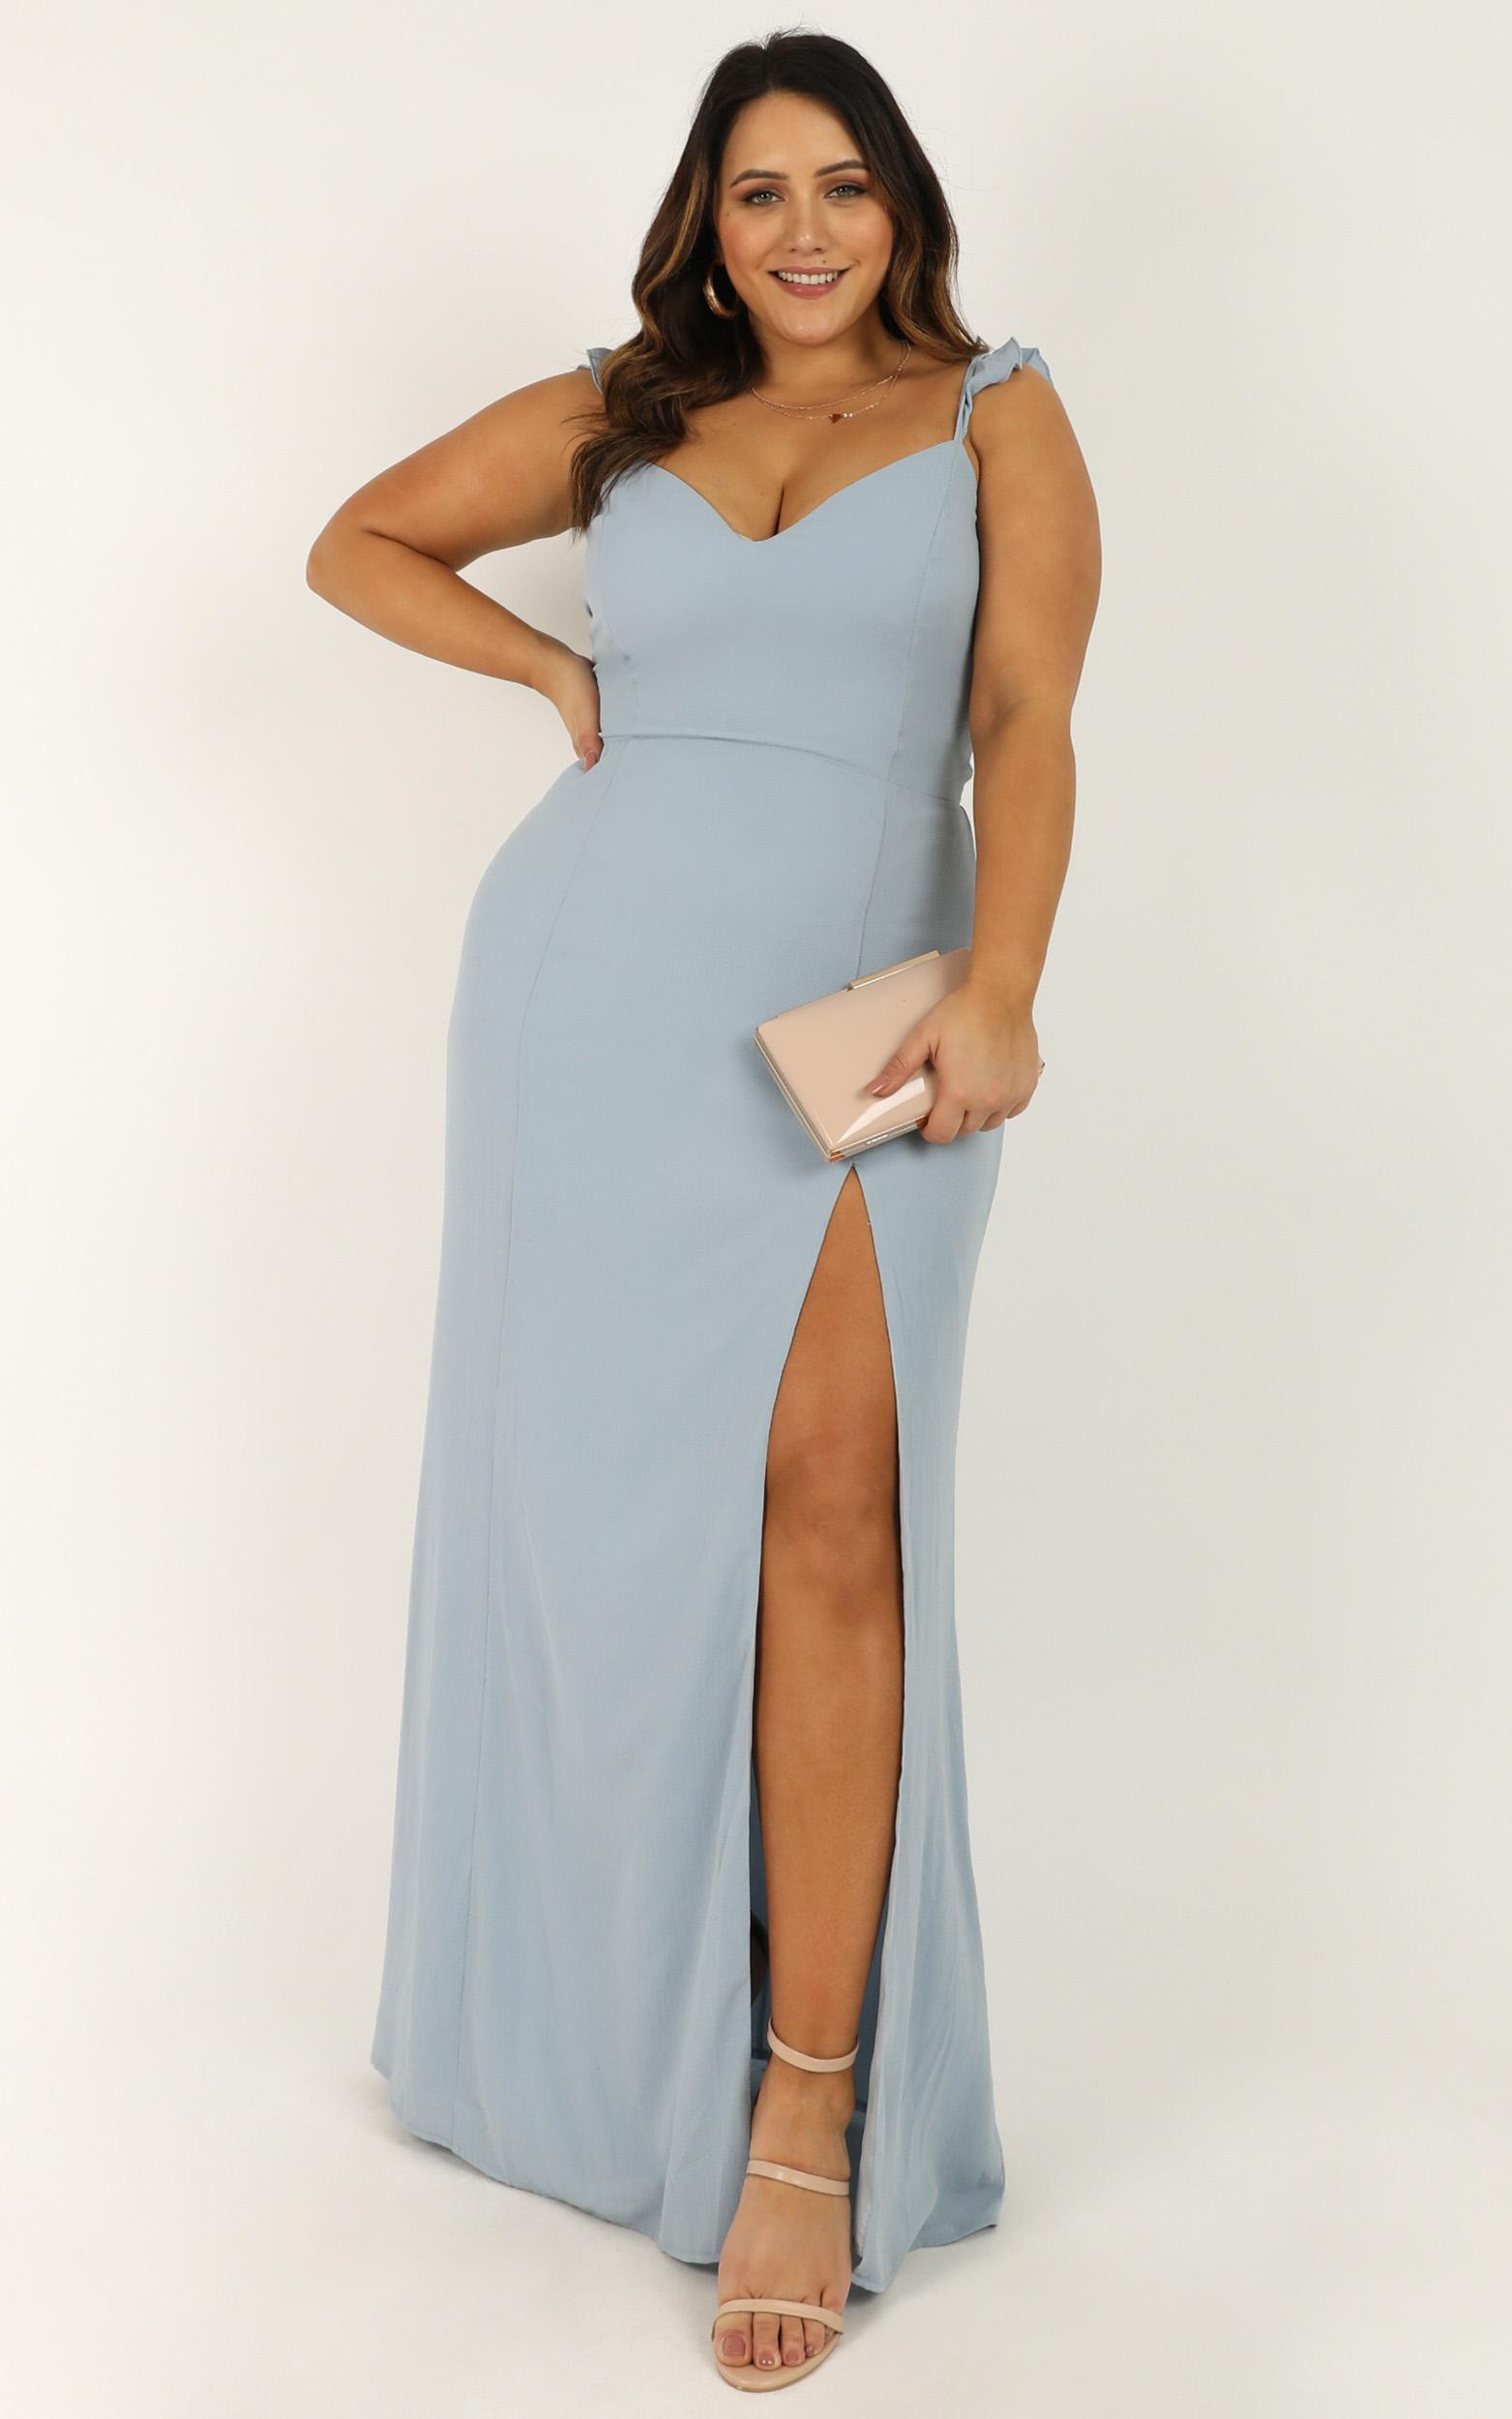 More Than This Dress in light blue - 20 (XXXXL), Blue, hi-res image number null